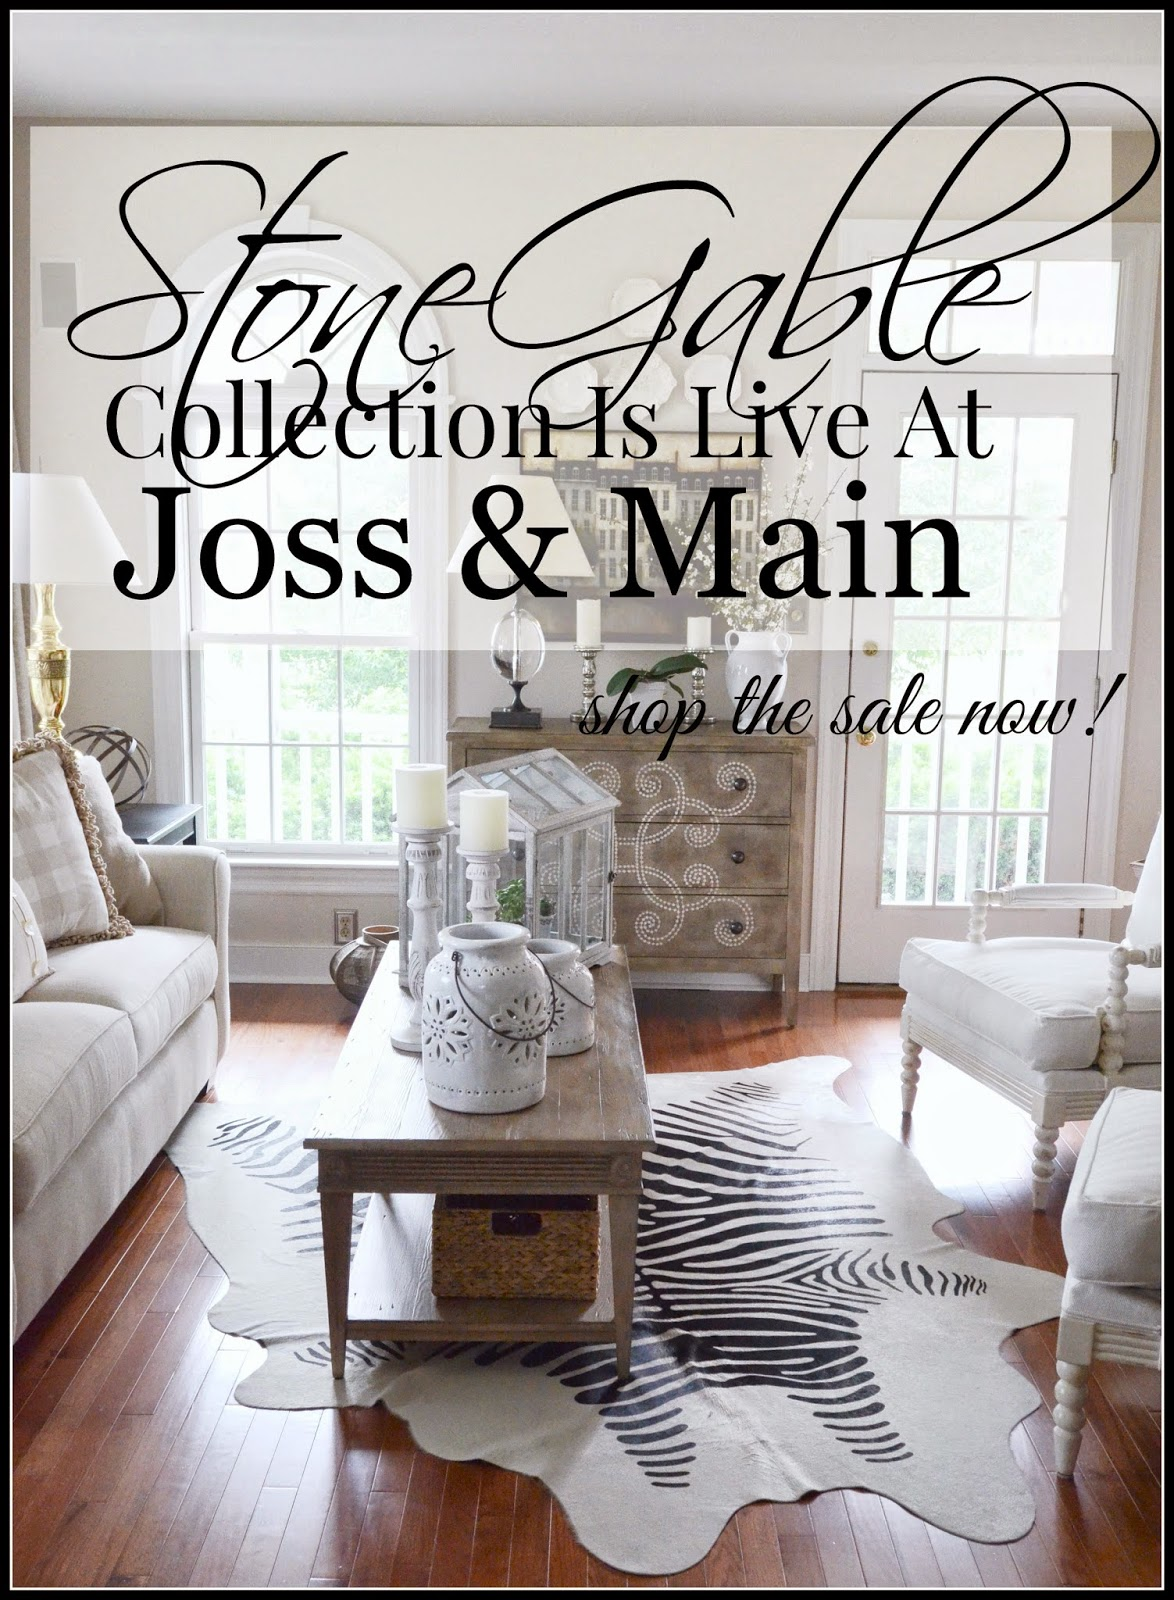 Stonegable collection is live at joss and main for Joss and main contact